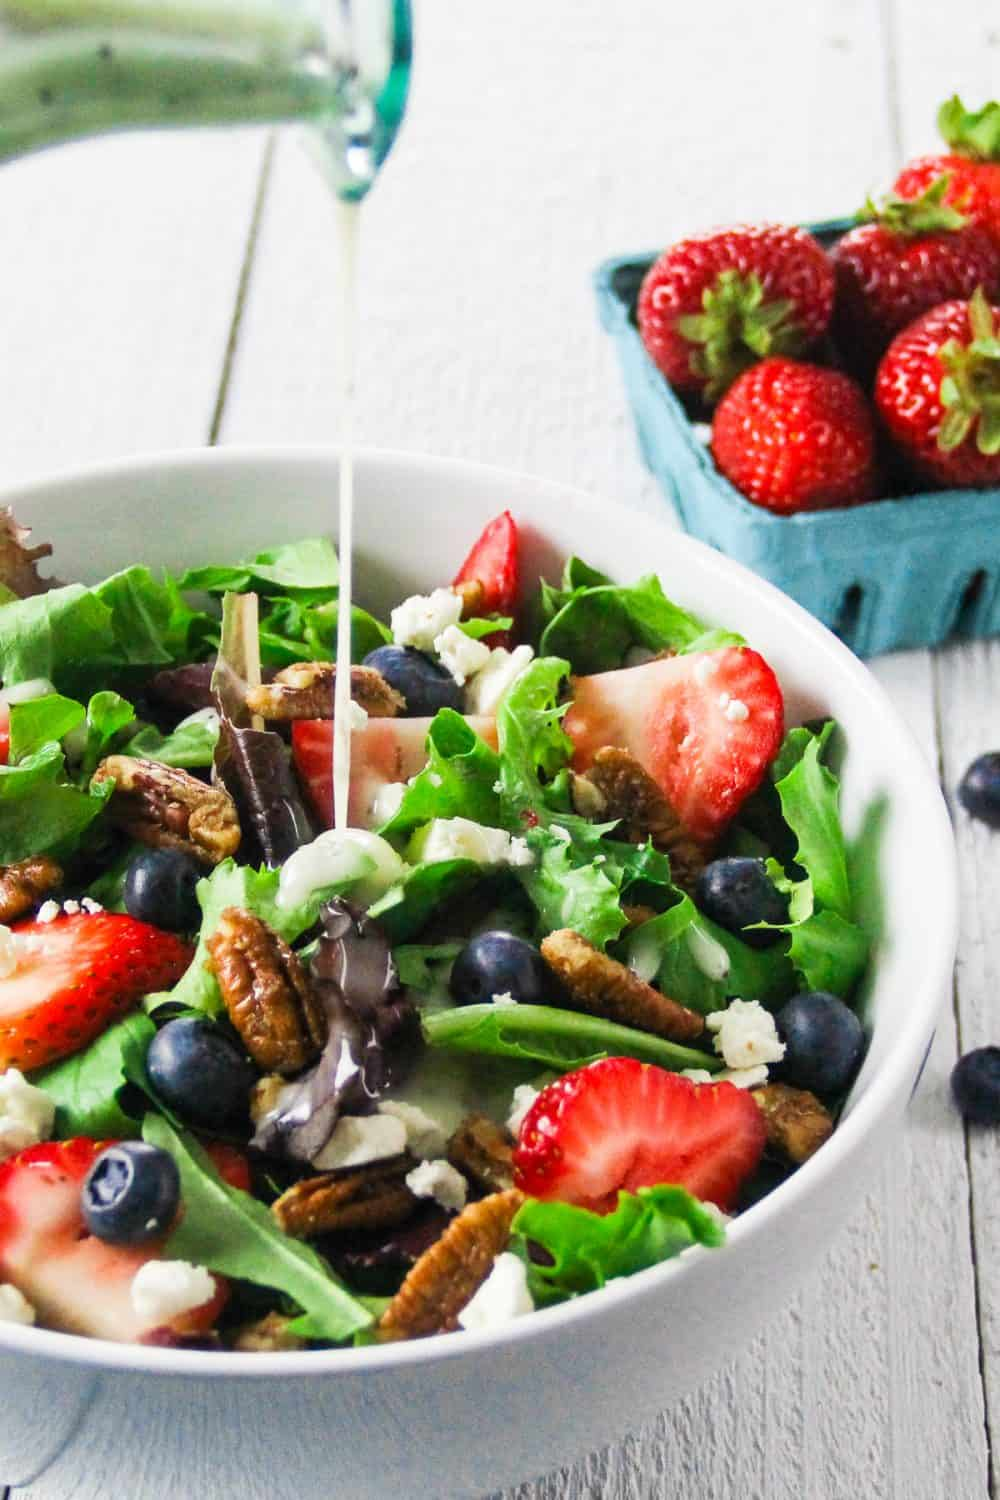 Add poppyseed dressing to this spinach strawberry feta salad recipe right before serving so your salad greens don't get soggy.